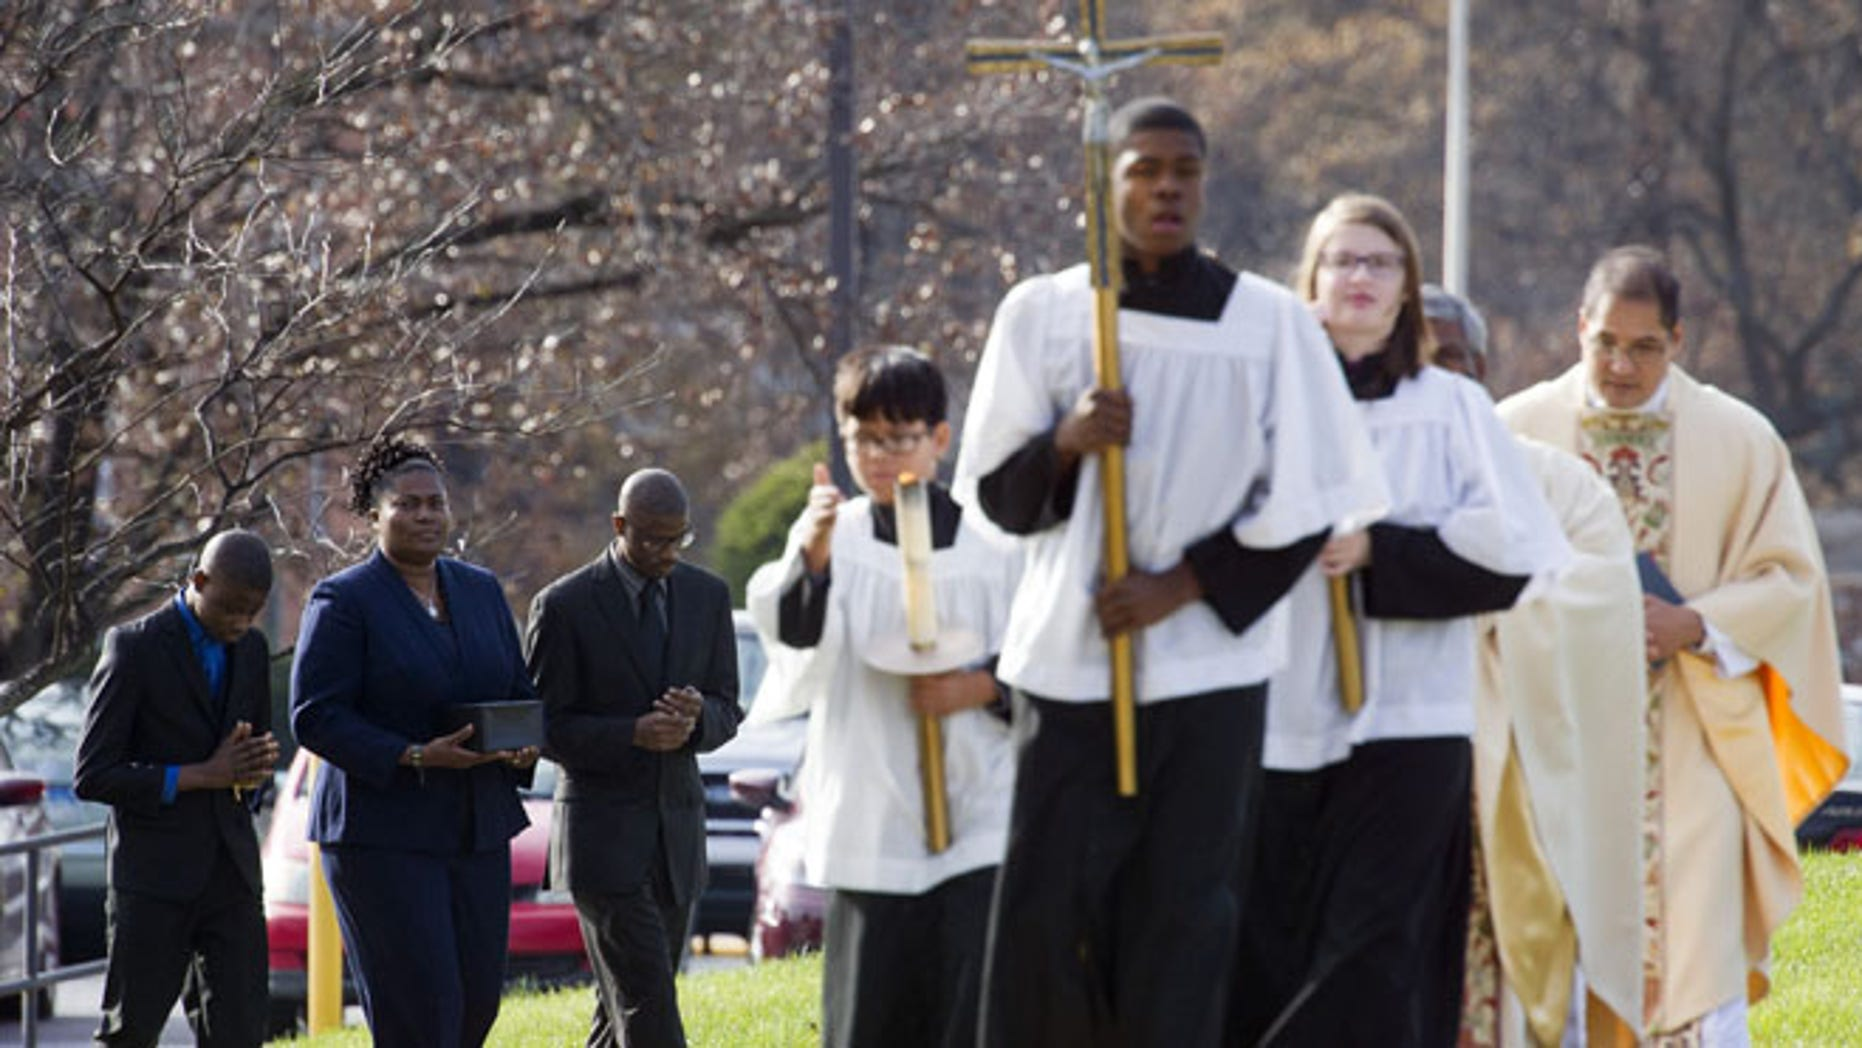 Nov. 29, 2014: Isatu Salia, second from left, carries the cremated remains of her husband, Dr. Martin Salia, while their sons Maada Martin Salia, 20, third from left, and Hinwaii Sakatty Salia, 12, left, walk with her to enter St. Mary's Catholic Church in Landover Hills, Md., during the funeral mass for Dr. Martin Salia. (AP)